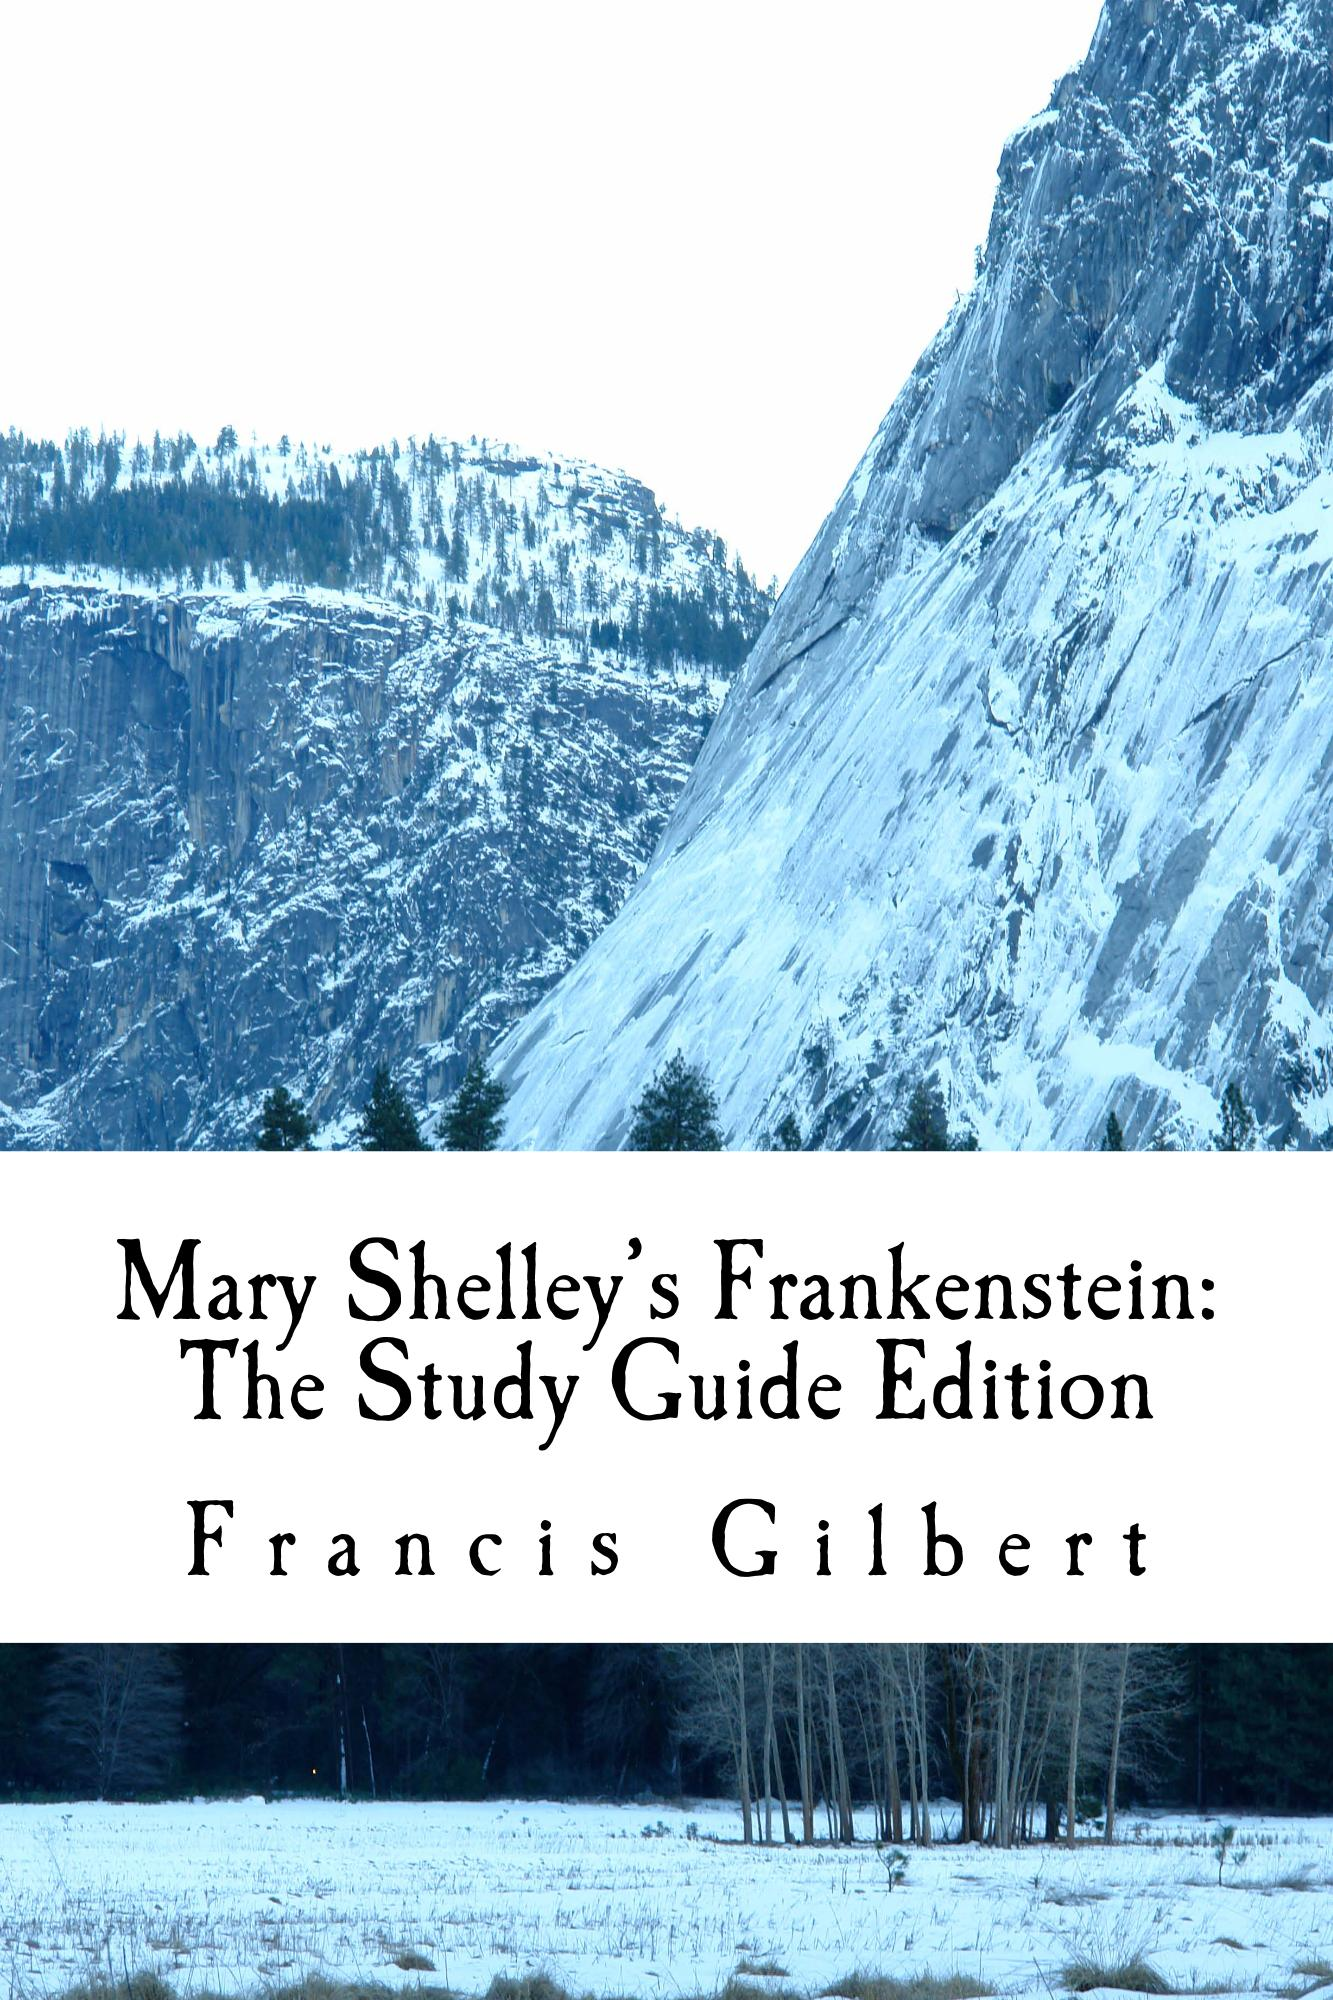 mary shelley s frankenstein the study guide edition francis gilbert